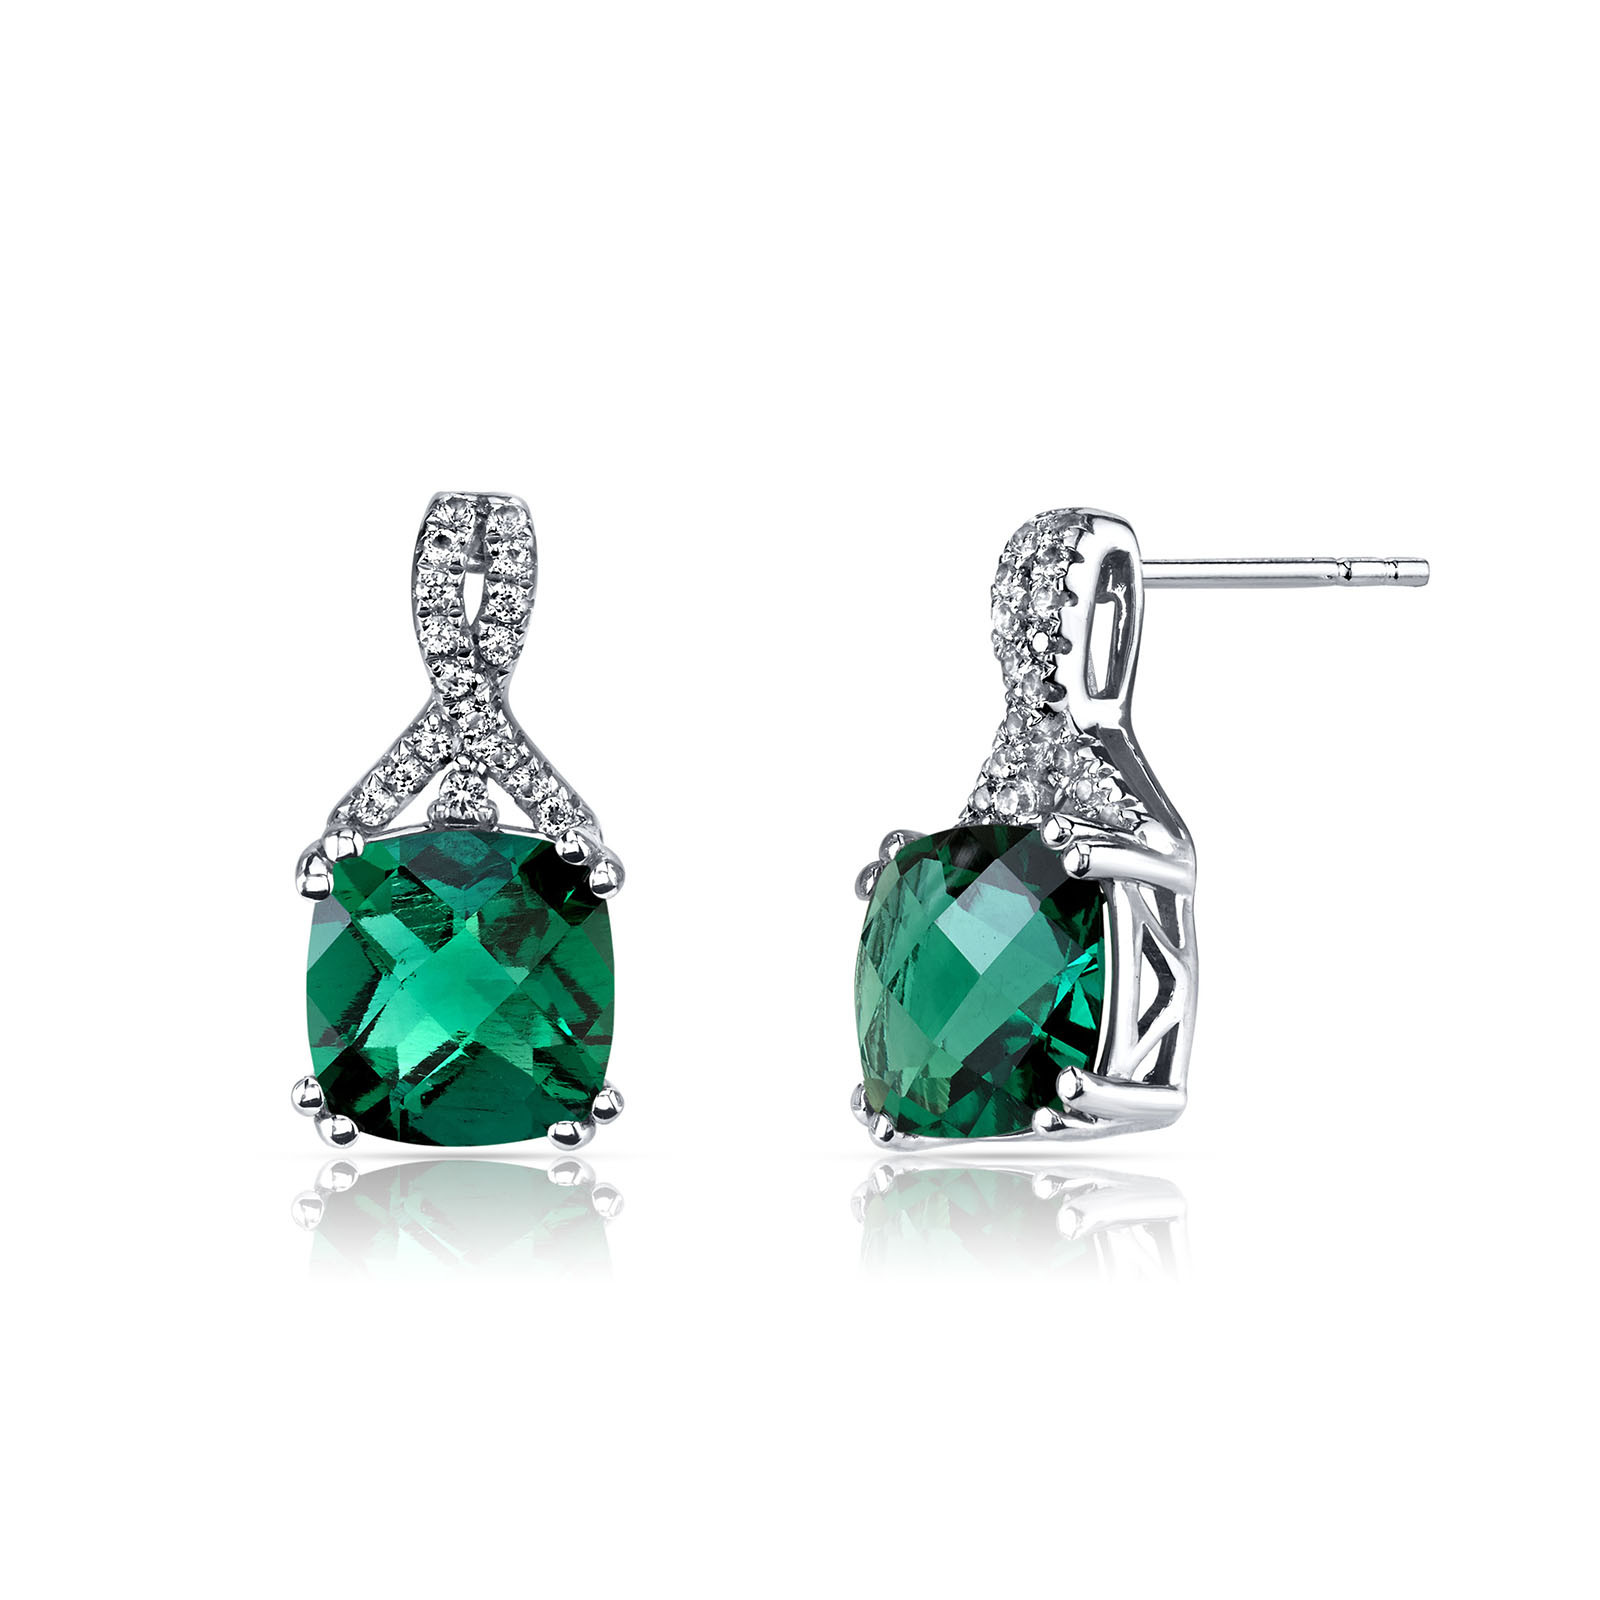 Cushion Cut Emerald White Topaz Ribbon Earrings In 9ct White Gold